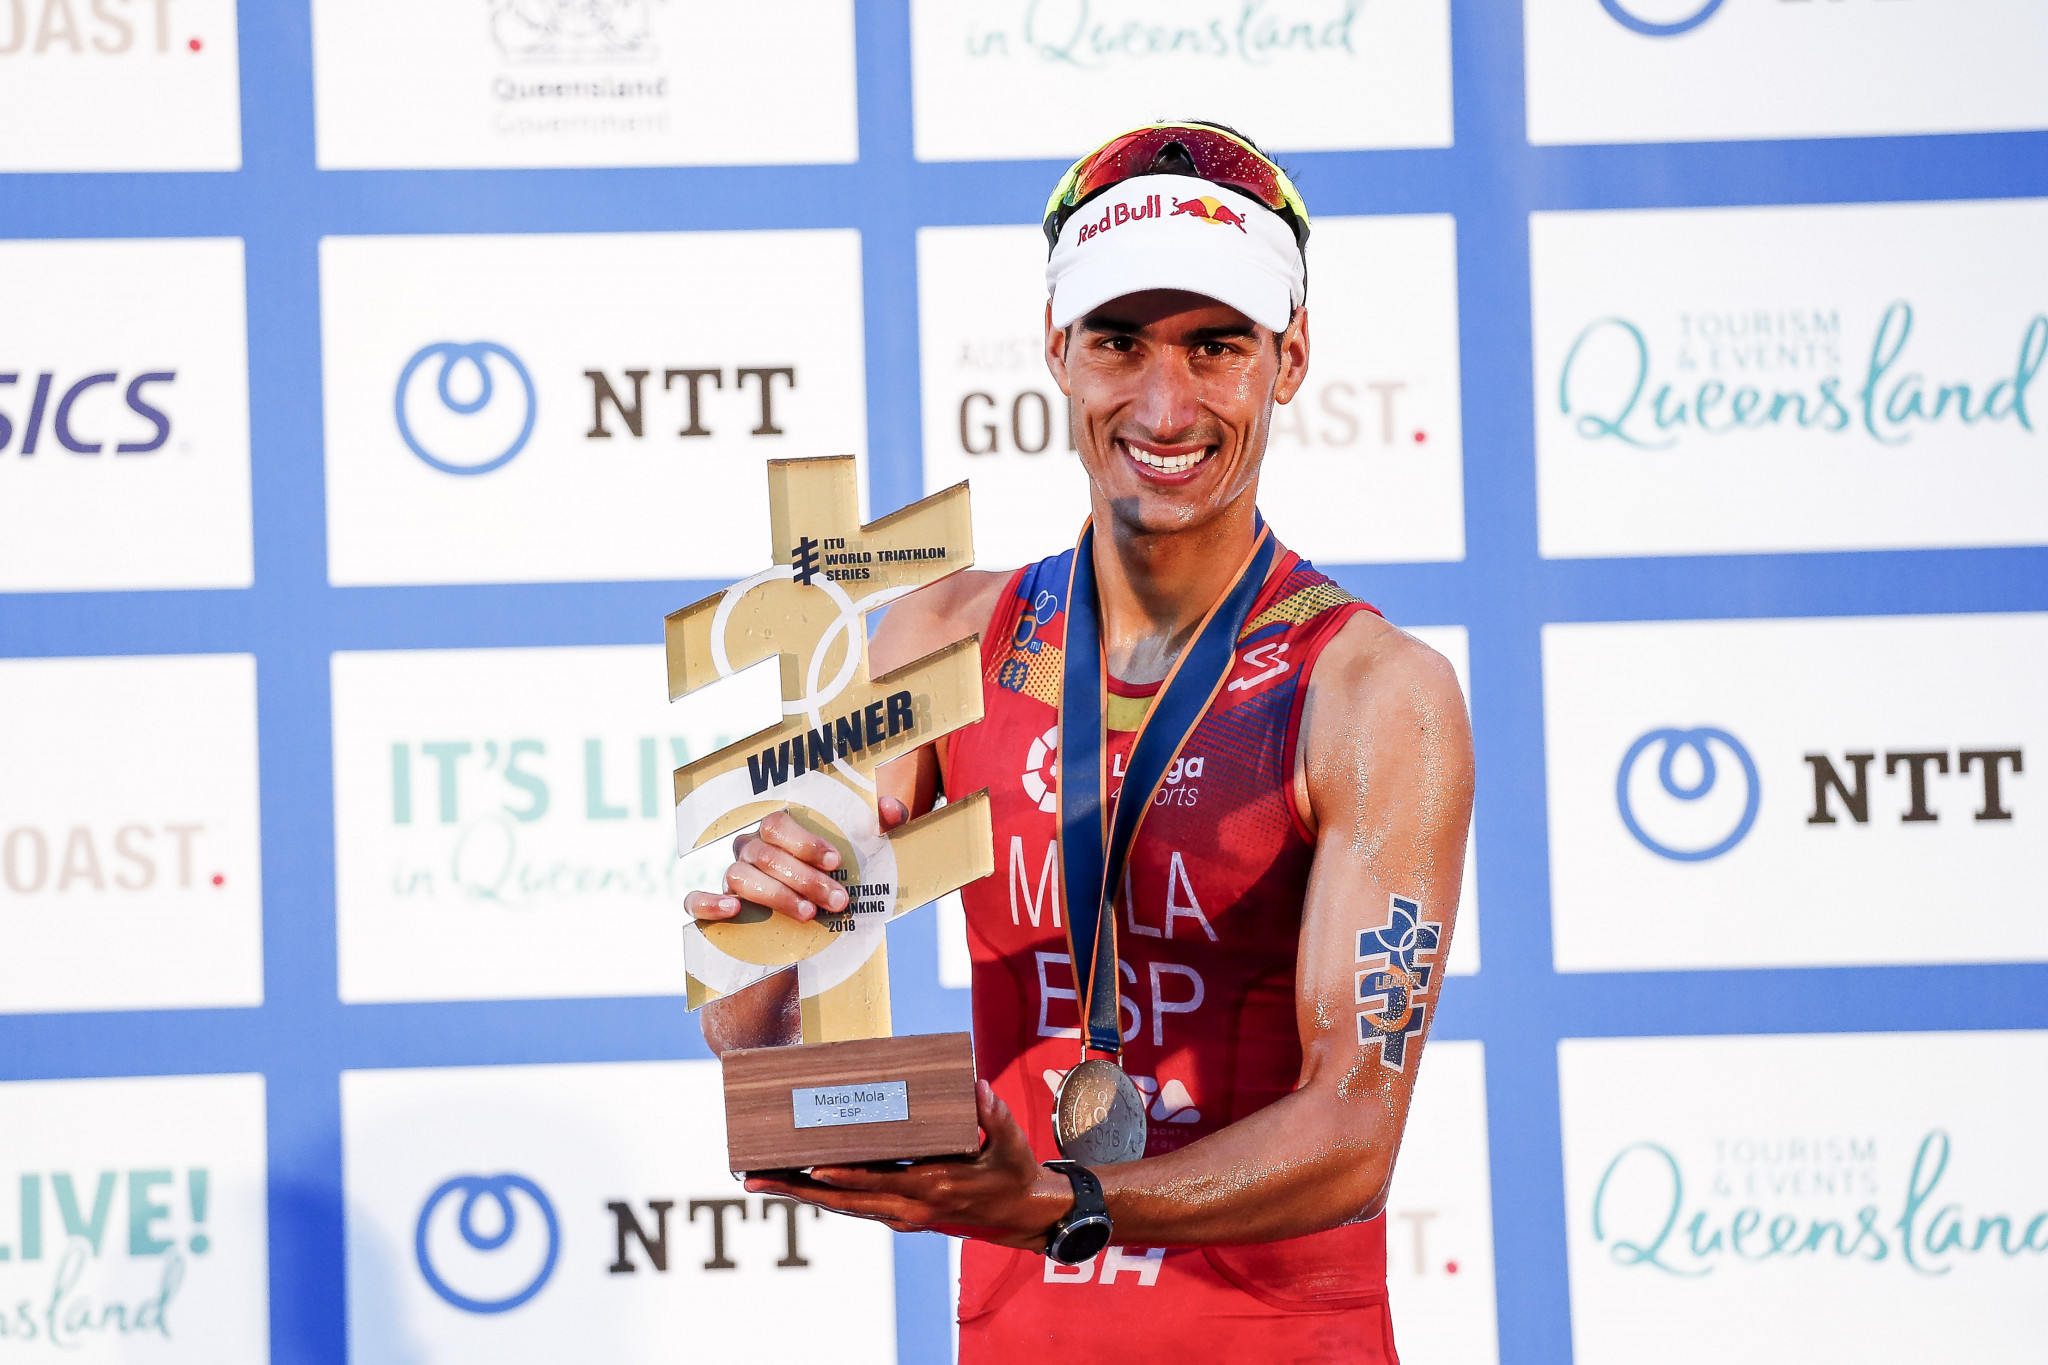 Mola equals world triathlon hat-trick of compatriot Gomez as Luis wins ITU Grand Final